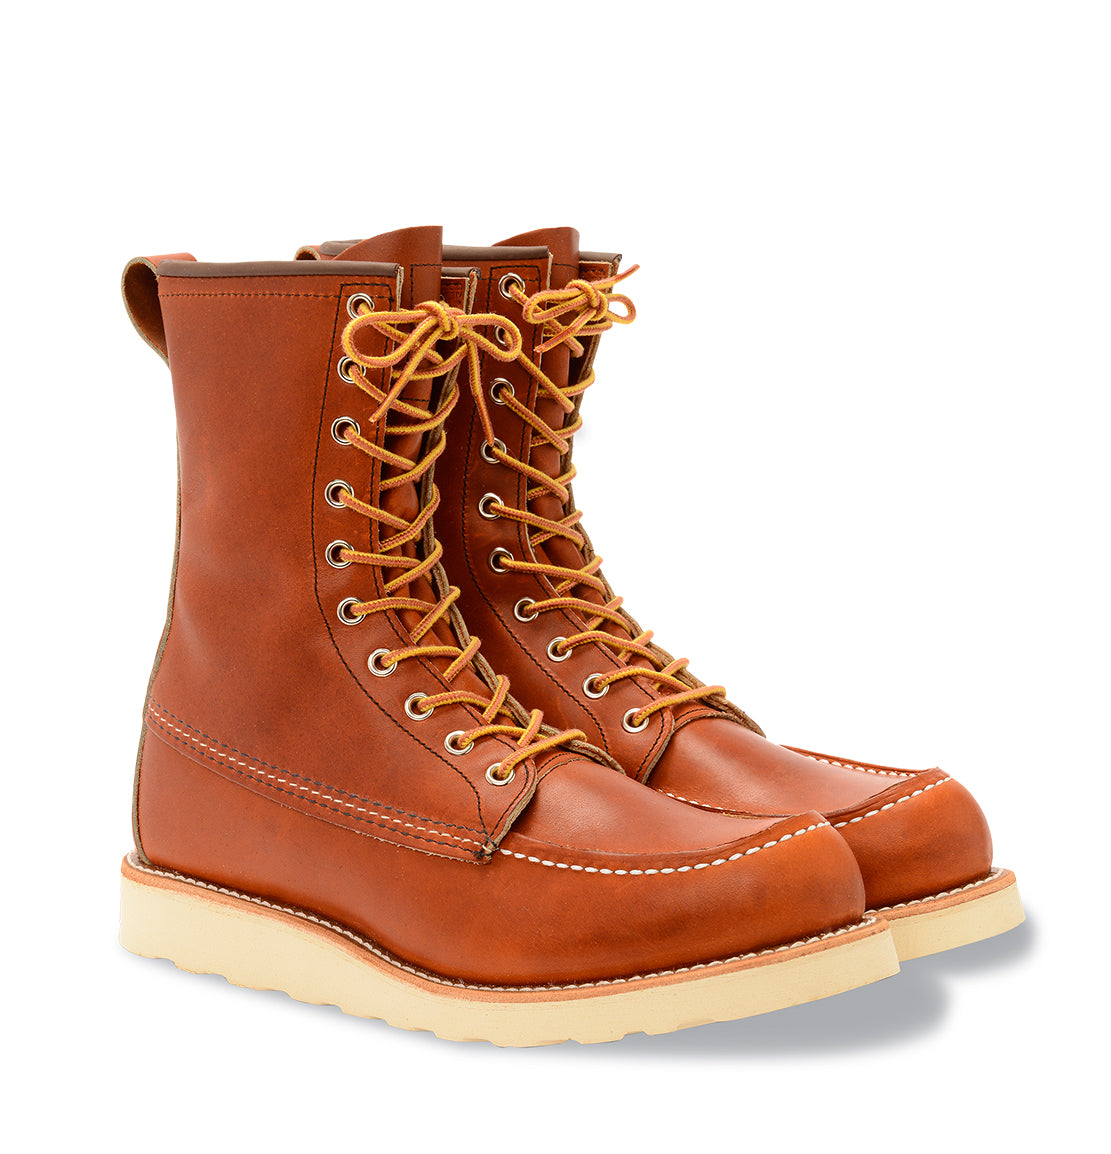 red wing boots 8 inch moc toe